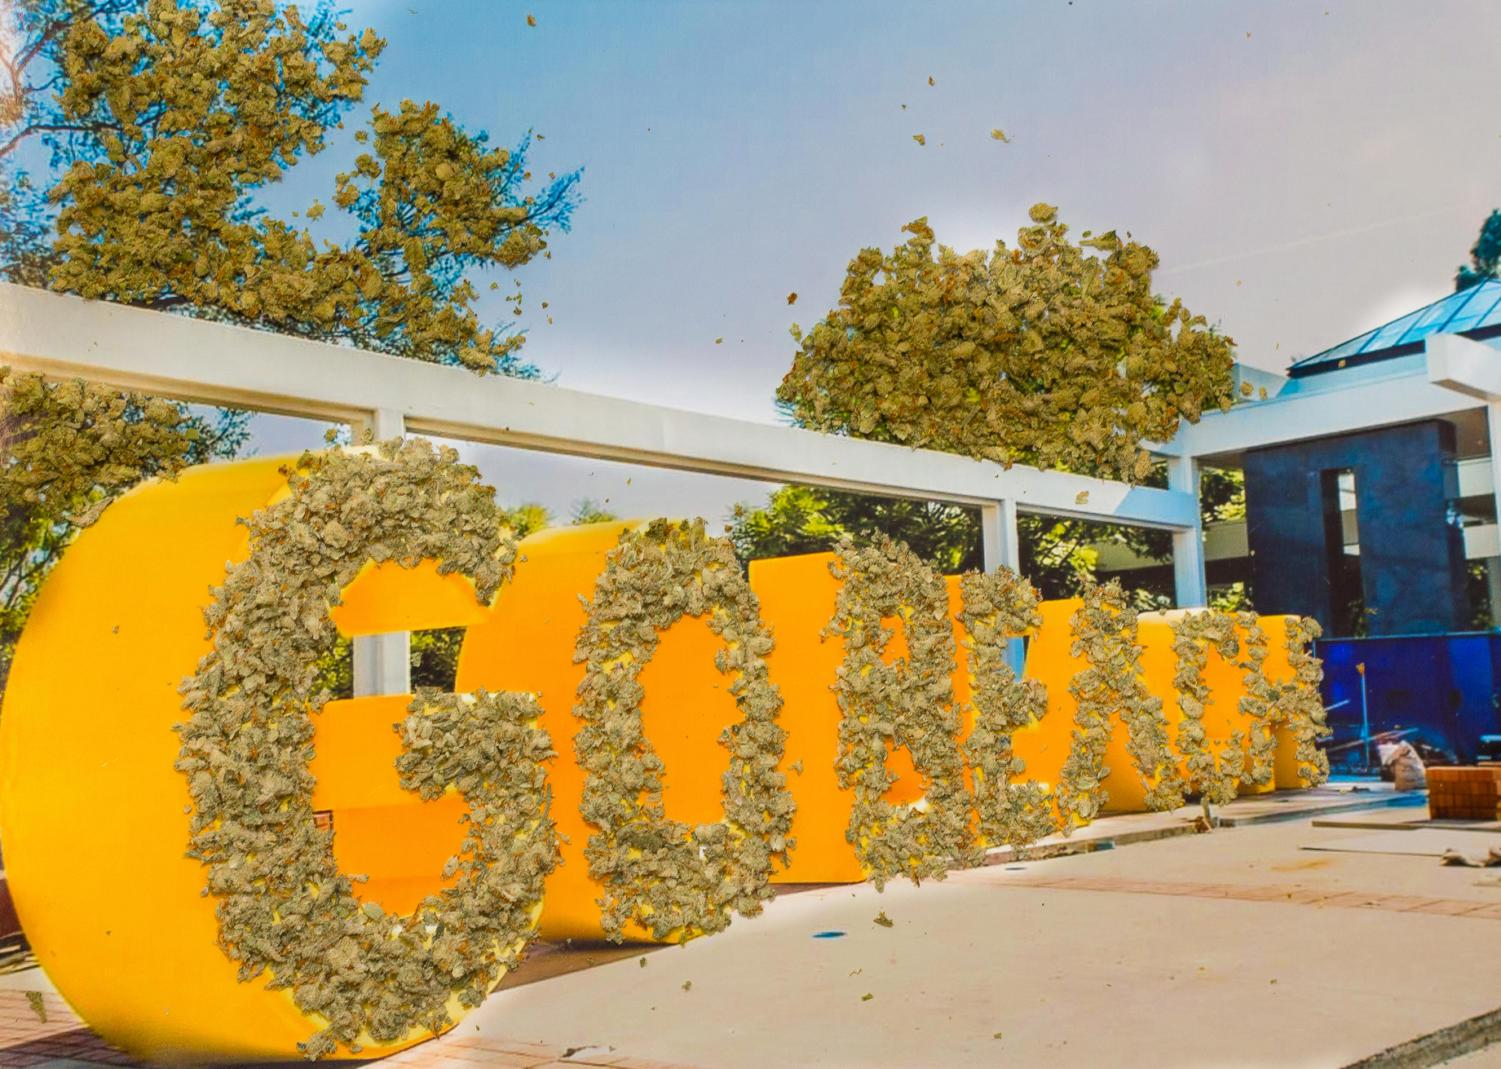 CSULB to remain weed free  Daily 49er